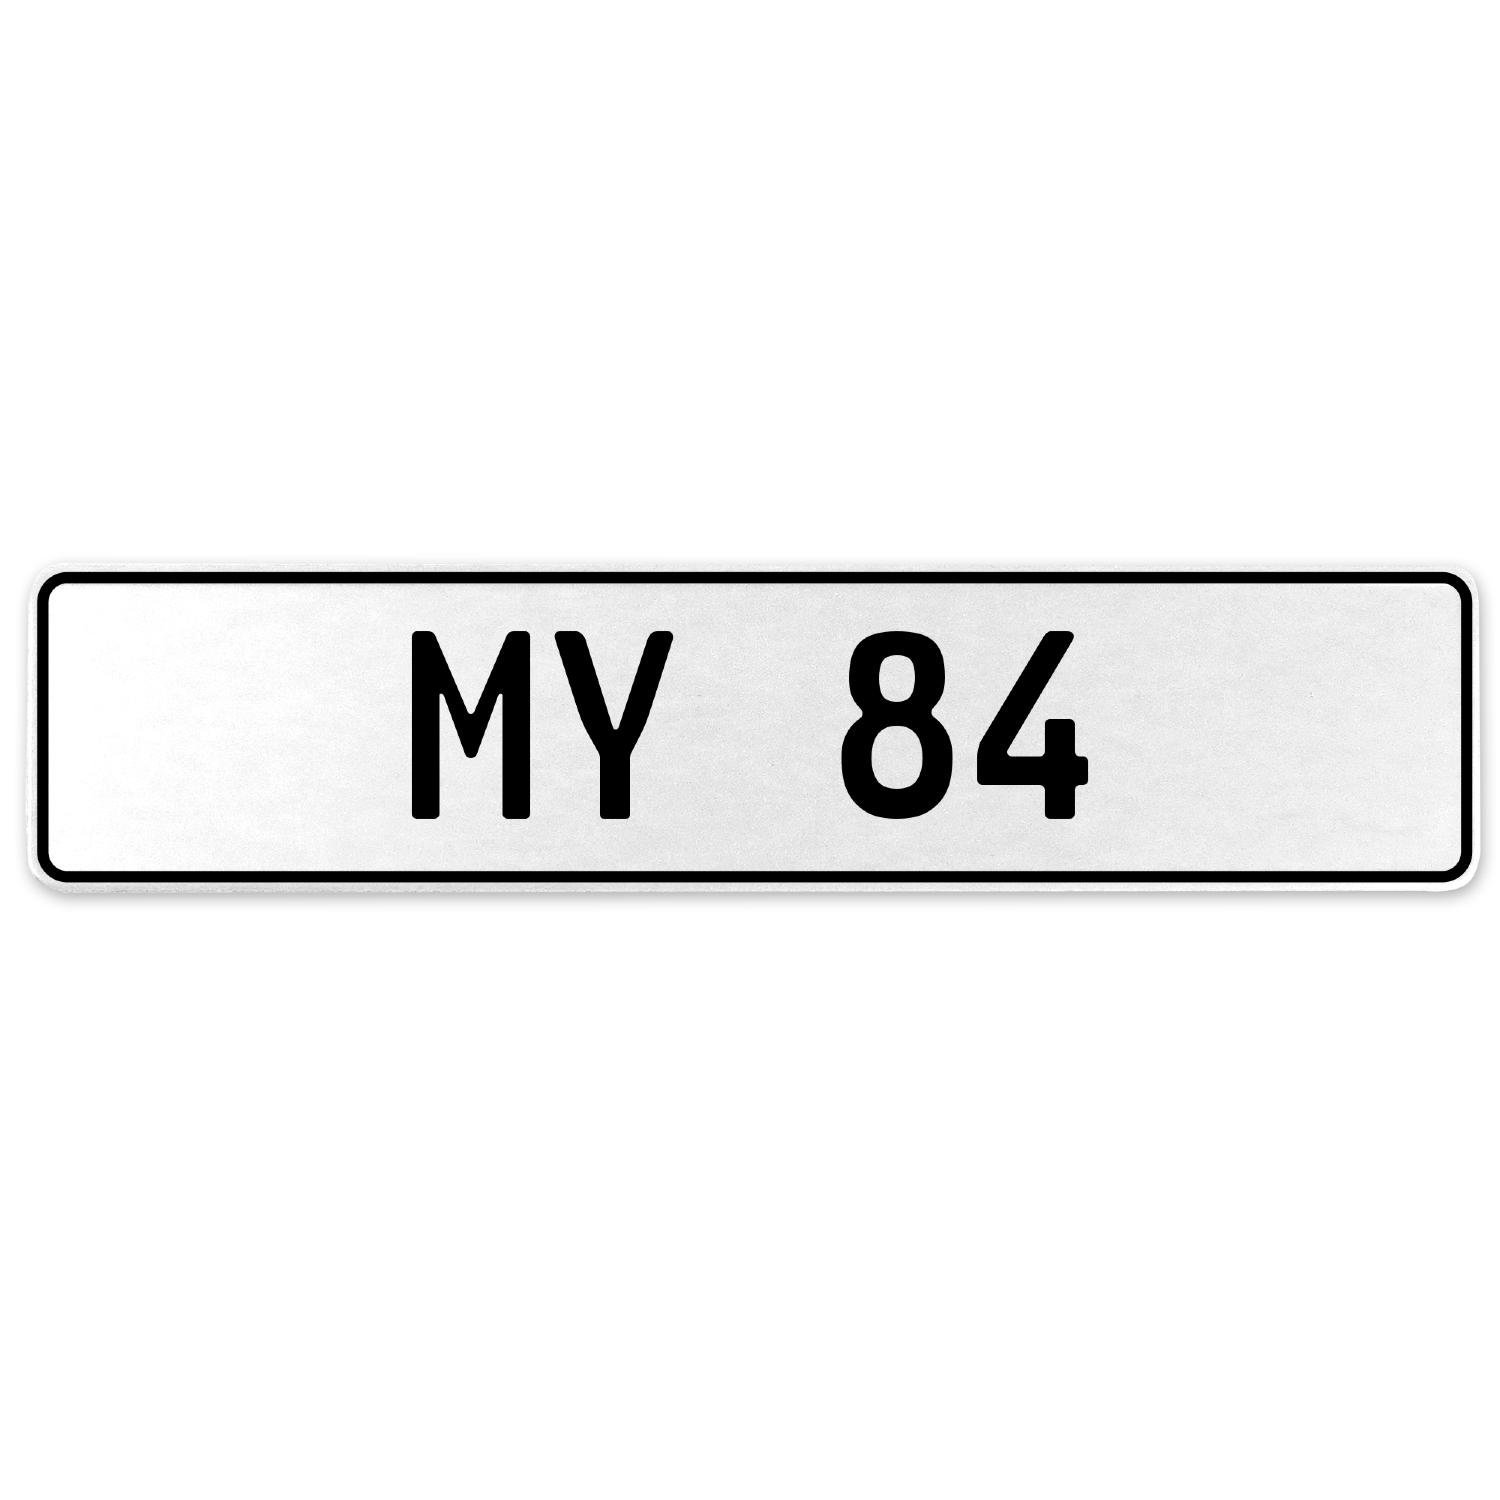 Vintage Parts 555176 My 84 White Stamped Aluminum European License Plate